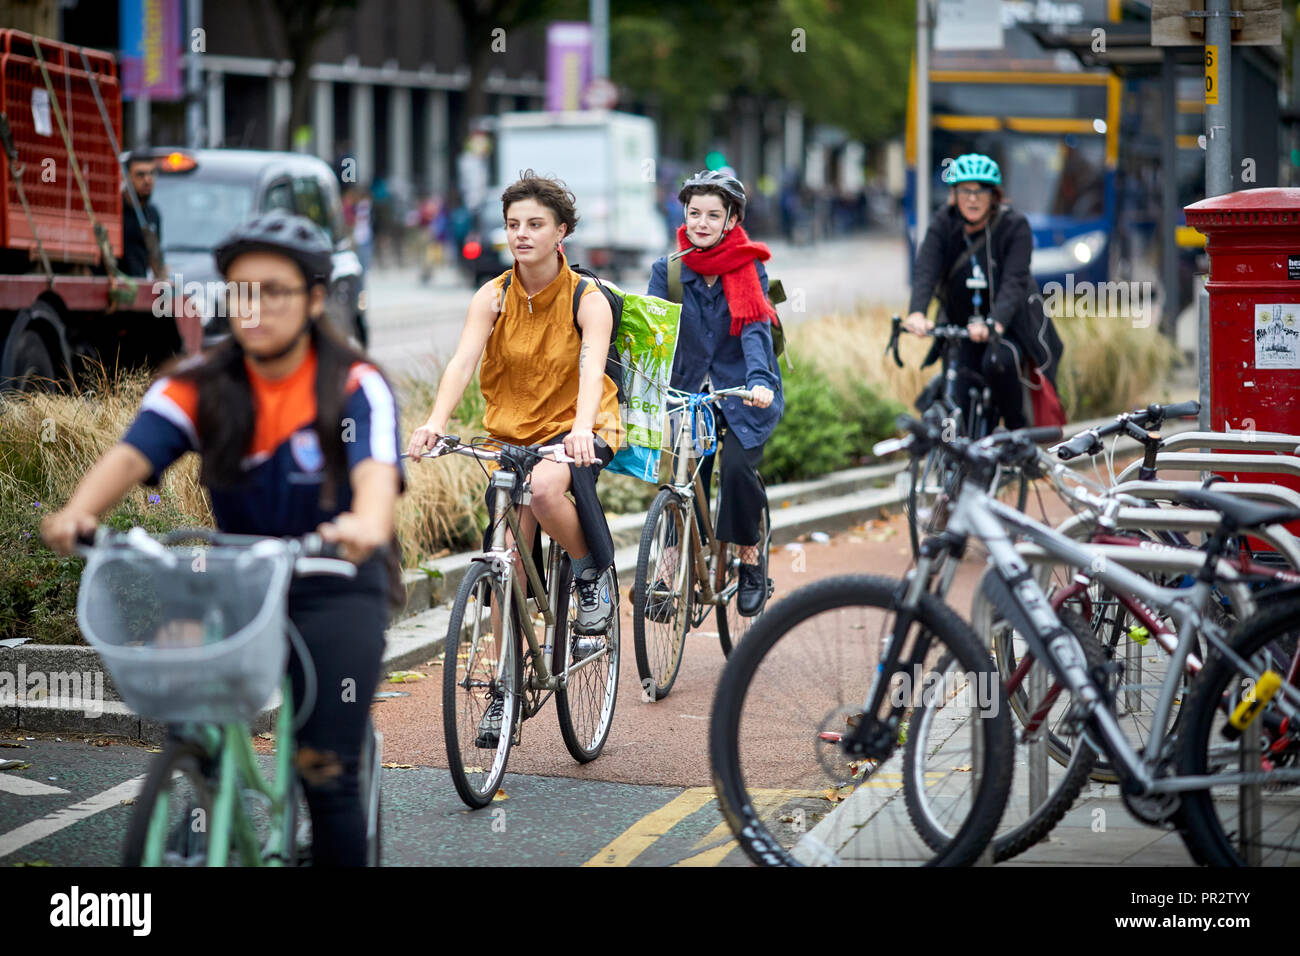 Manchester Oxford Road cycle lane and bus lane passing the University. - Stock Image